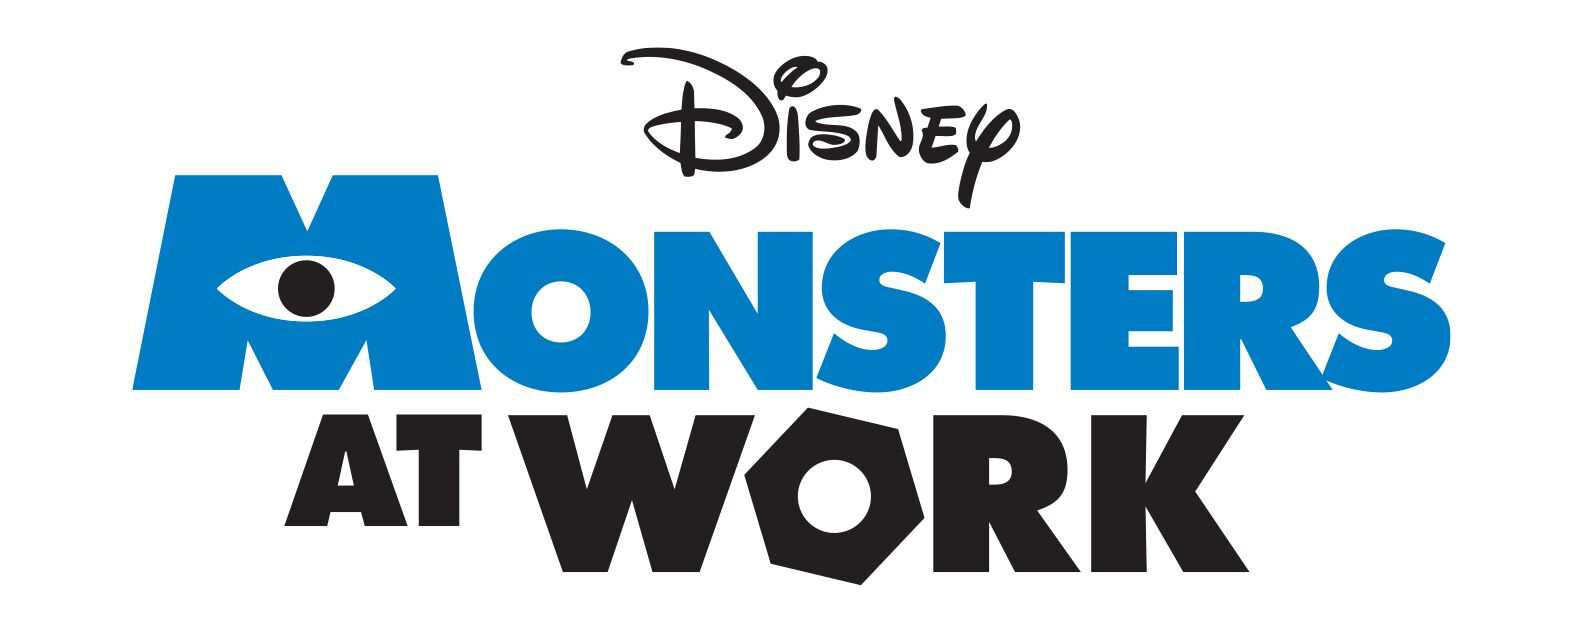 Meet Tylor! Monsters at Work series will revisit the Monsters Inc. world